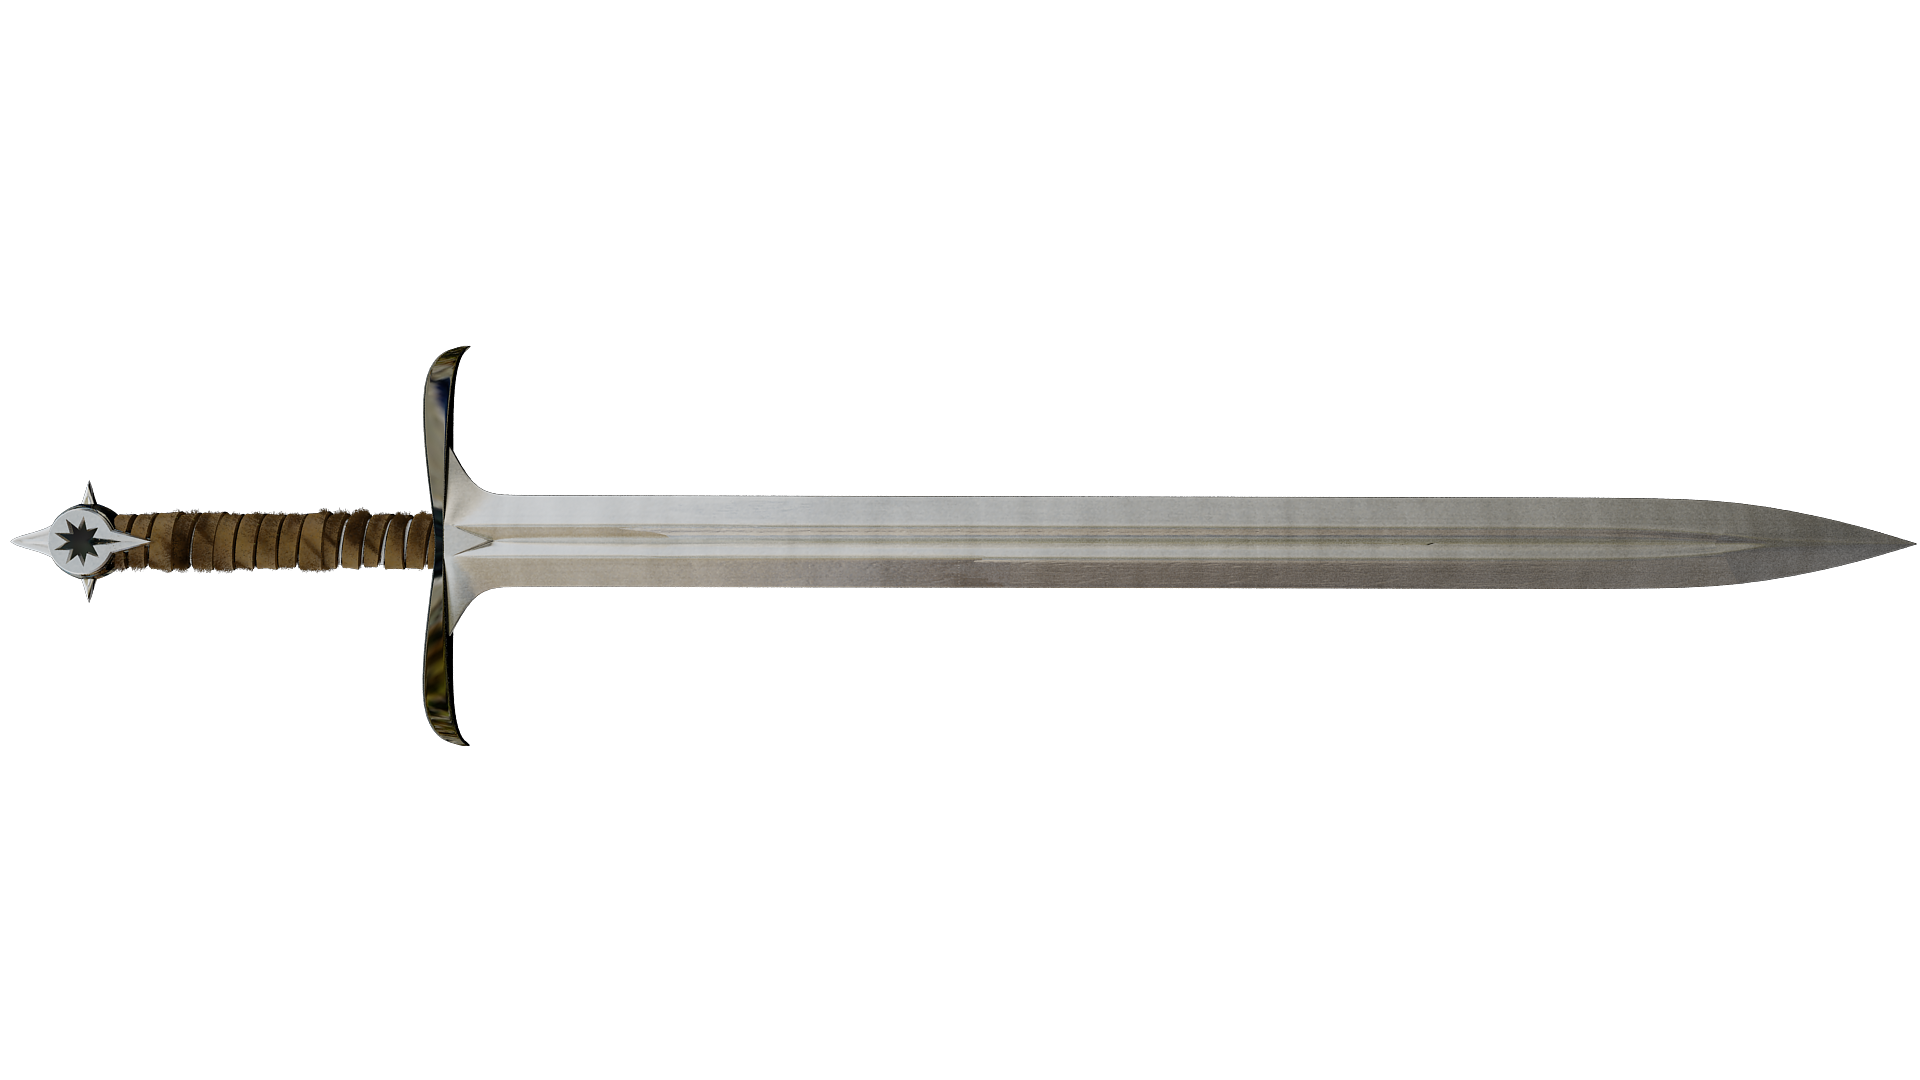 Réclamation des modifications de stats. - Page 4 Sword-hd-png-sword-png-image-1920